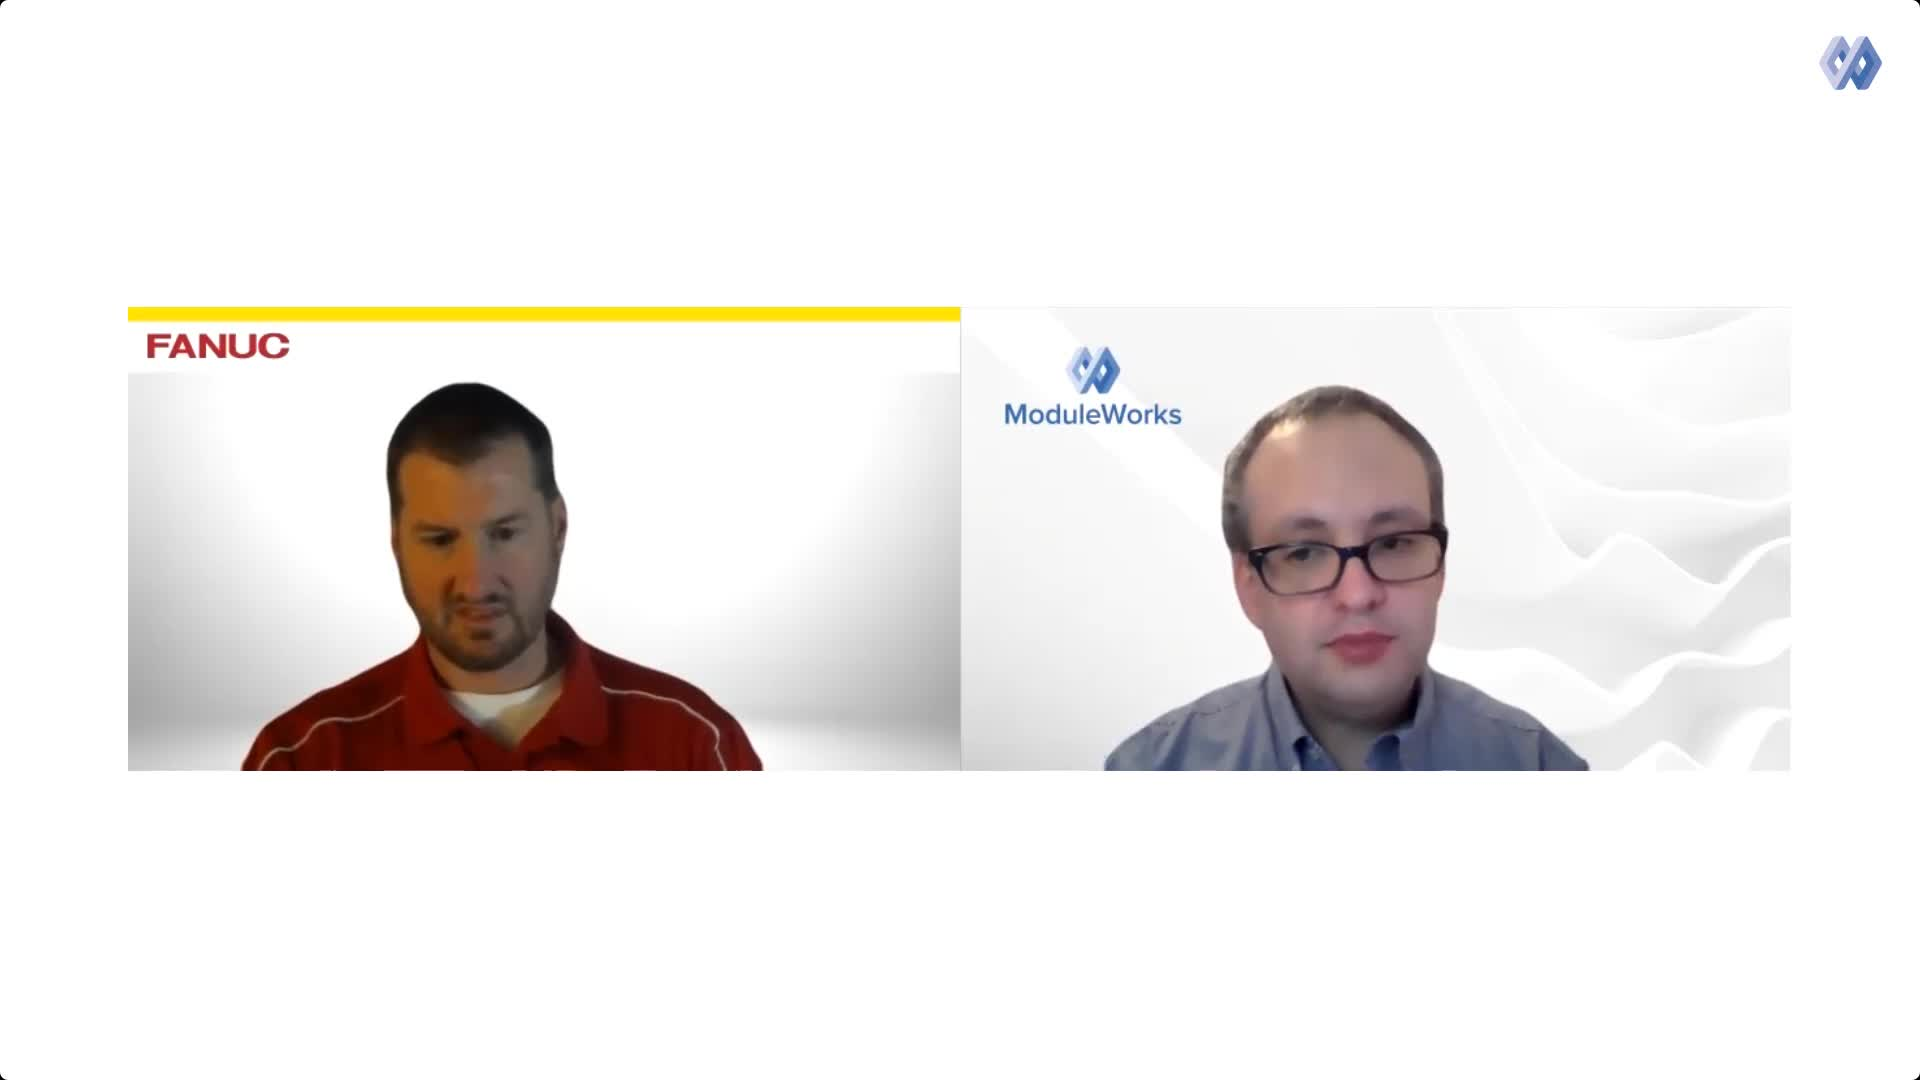 It's time for the next part of the #interview series with our partner FANUC America Corporation